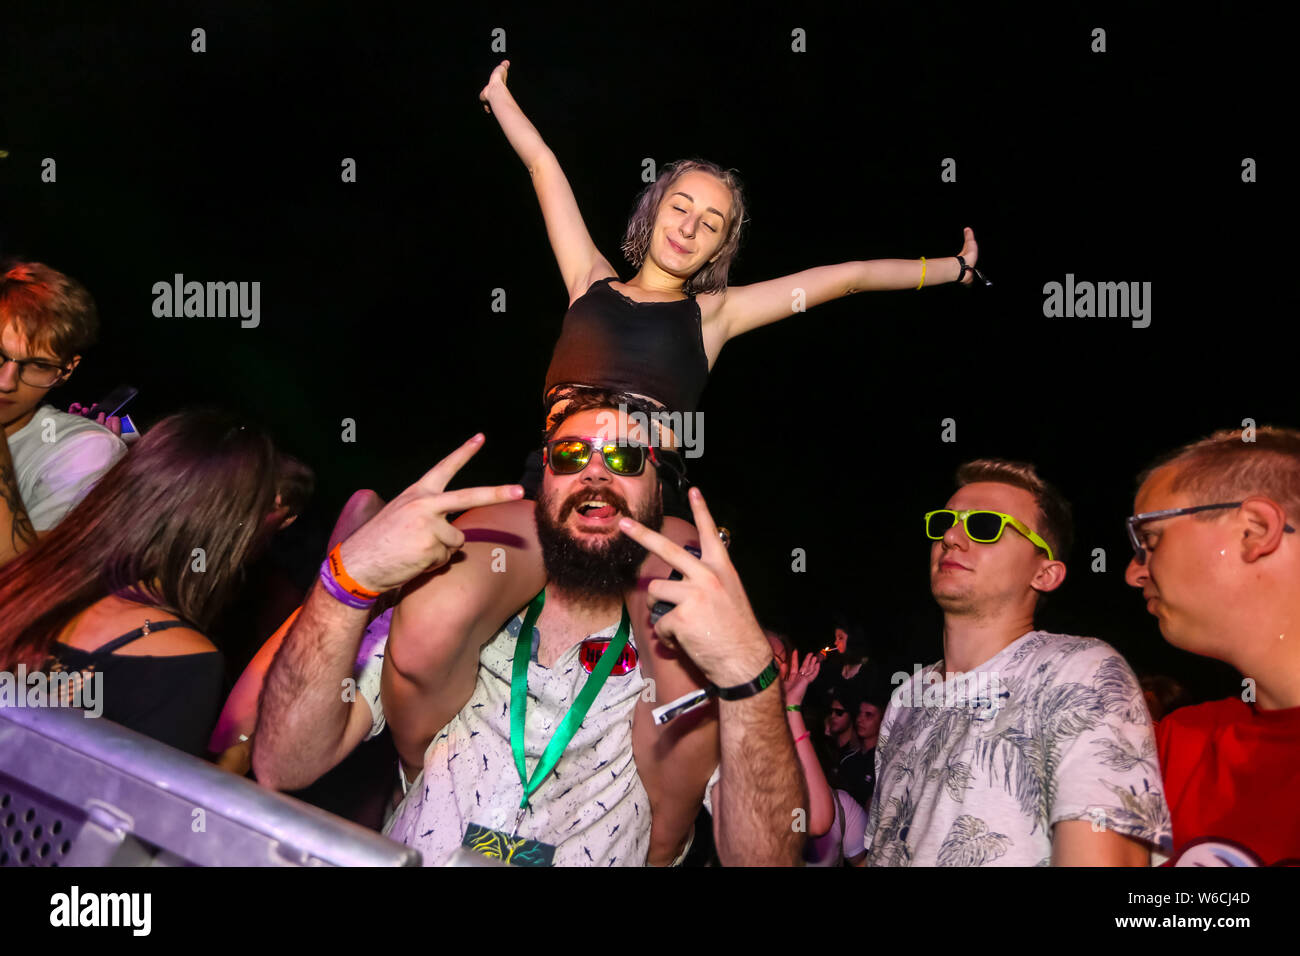 Brezje, Croatia - 19th July, 2019 : Audience during the Forestland, ultimate forest electronic music festival located in Brezje, Croatia. Stock Photo